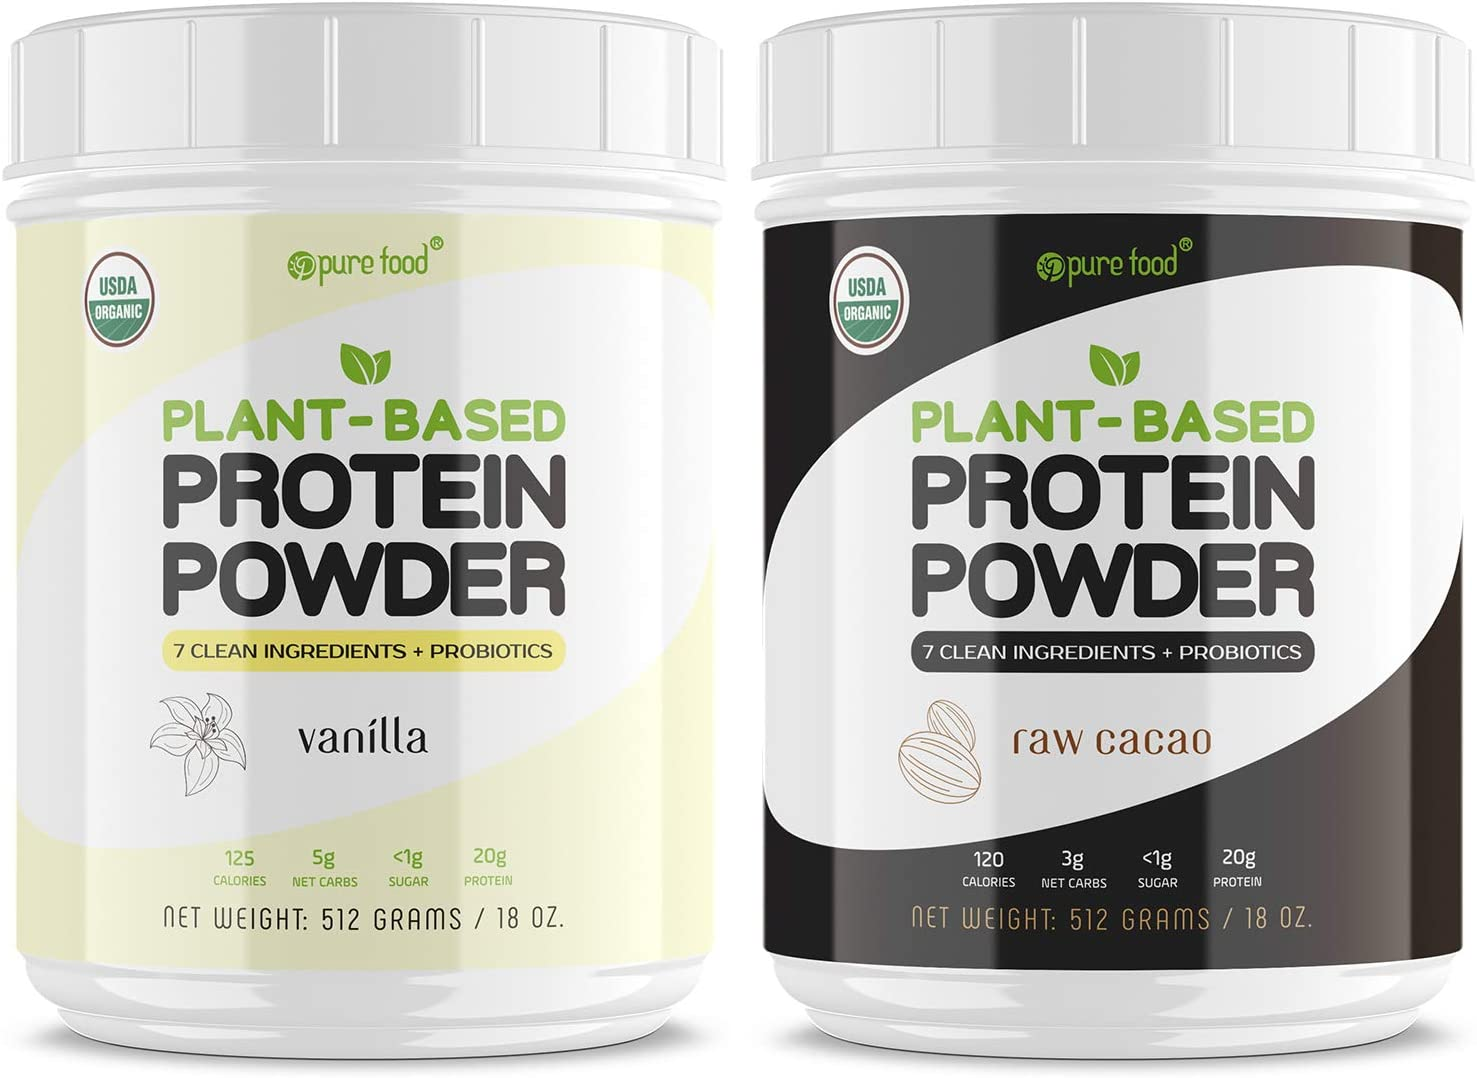 Pure Food: Plant Based Protein Powder with Probiotics | Organic, Clean, All Natural, Vegan, Vegetarian, Whole Superfood Nutritional Supplement with No Additives | Keto (Vanilla + Chocolate)